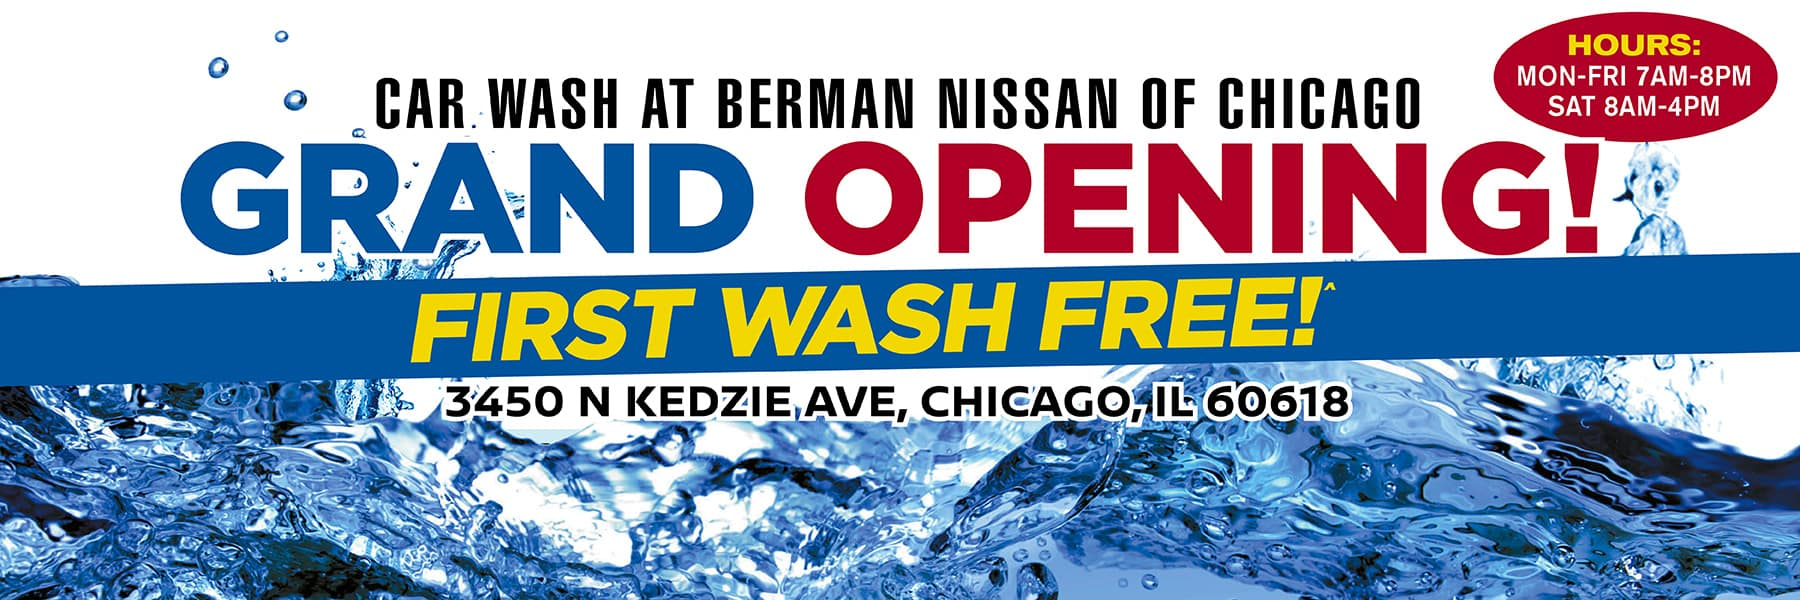 Car Wash at Berman Nissan of Chicago! Celebrate Our Grand Opening Event! First Wash Free!